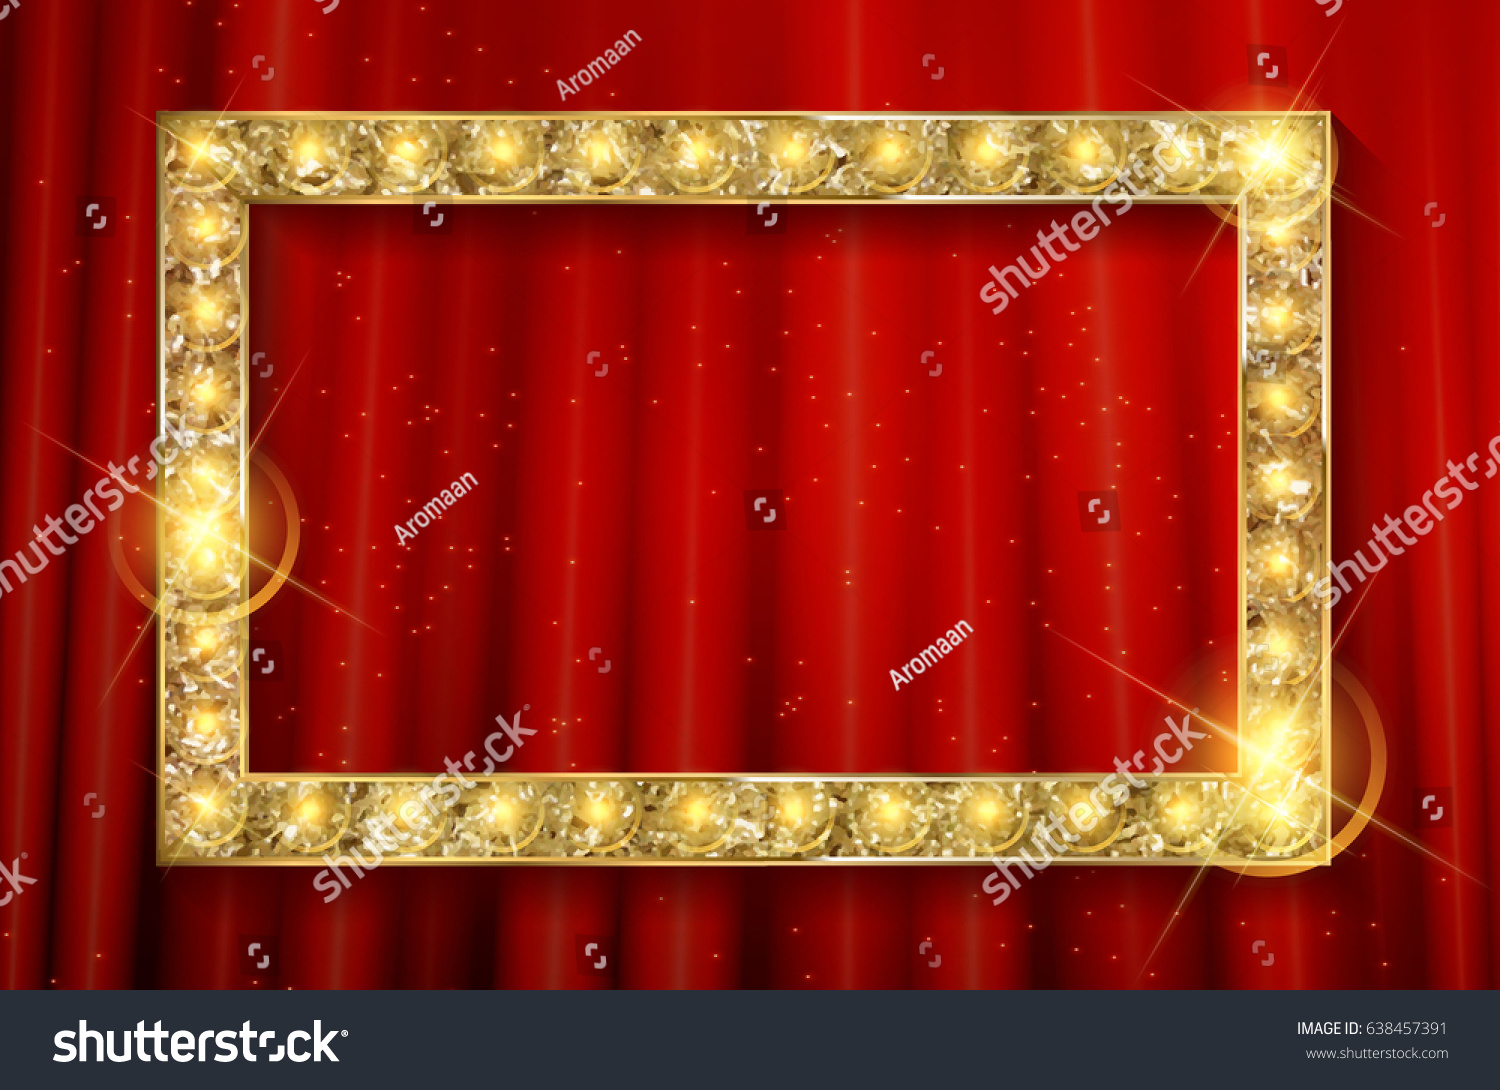 Vector Stage Red Curtain Golden Frame Stock Vector (Royalty Free ...